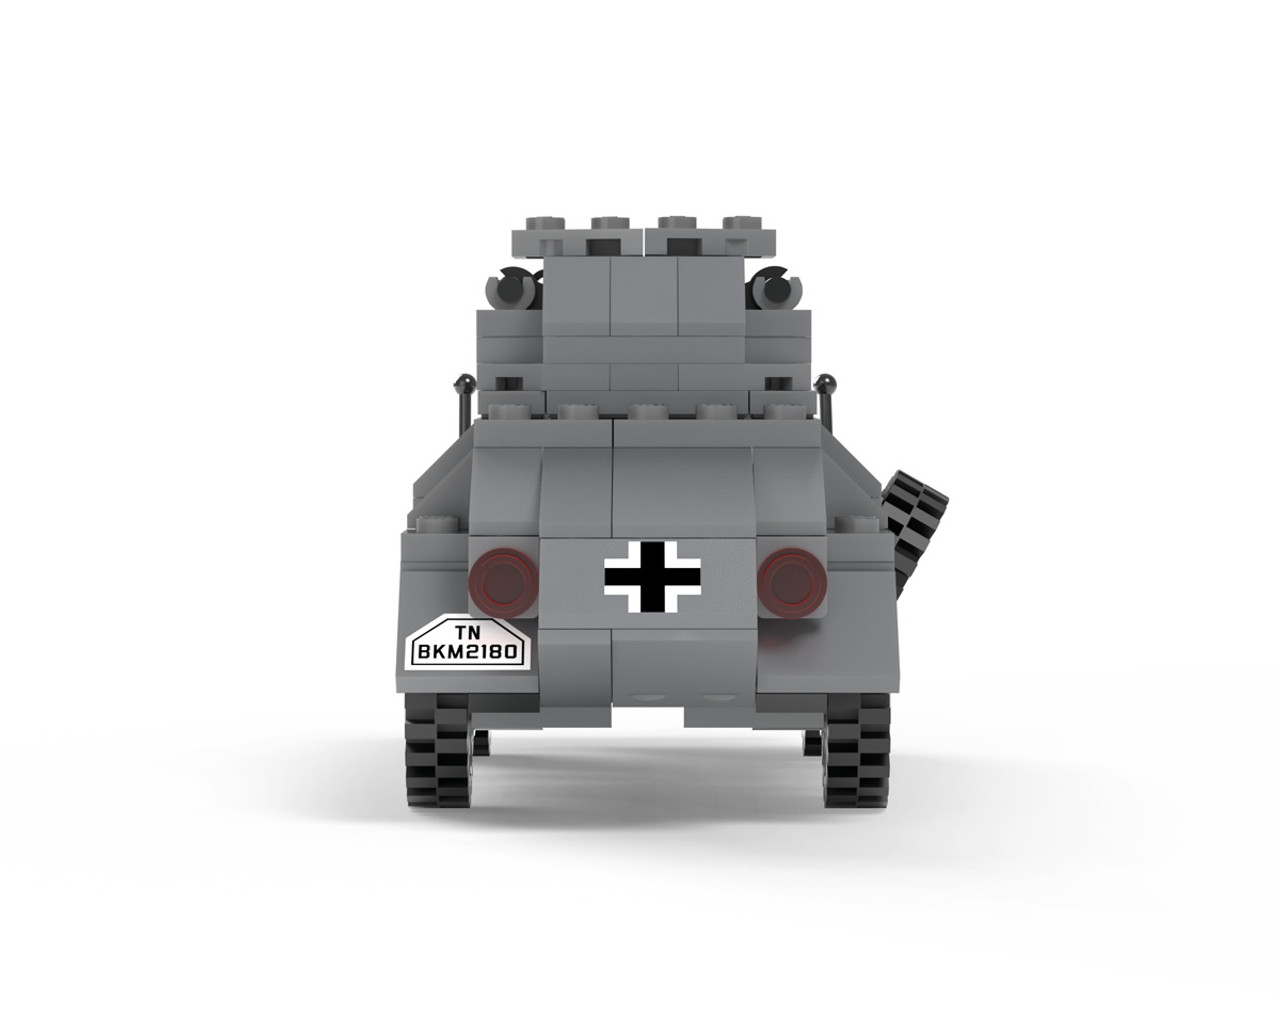 Sdkfz 222 - German Light Armored Car